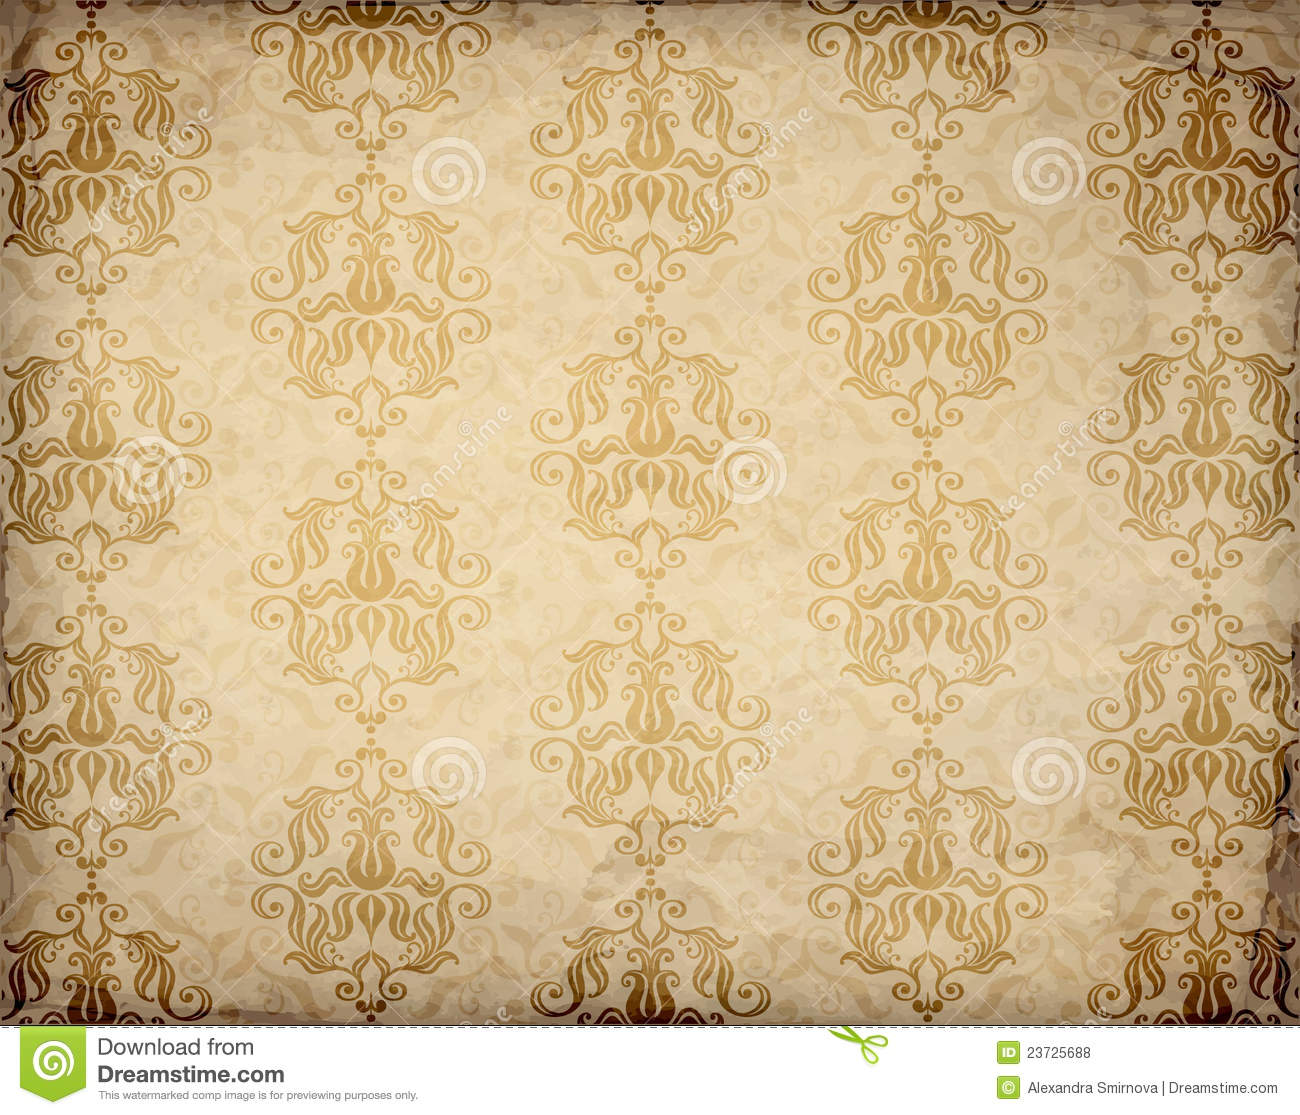 old fashioned wallpaper pattern stock vector image 23725688